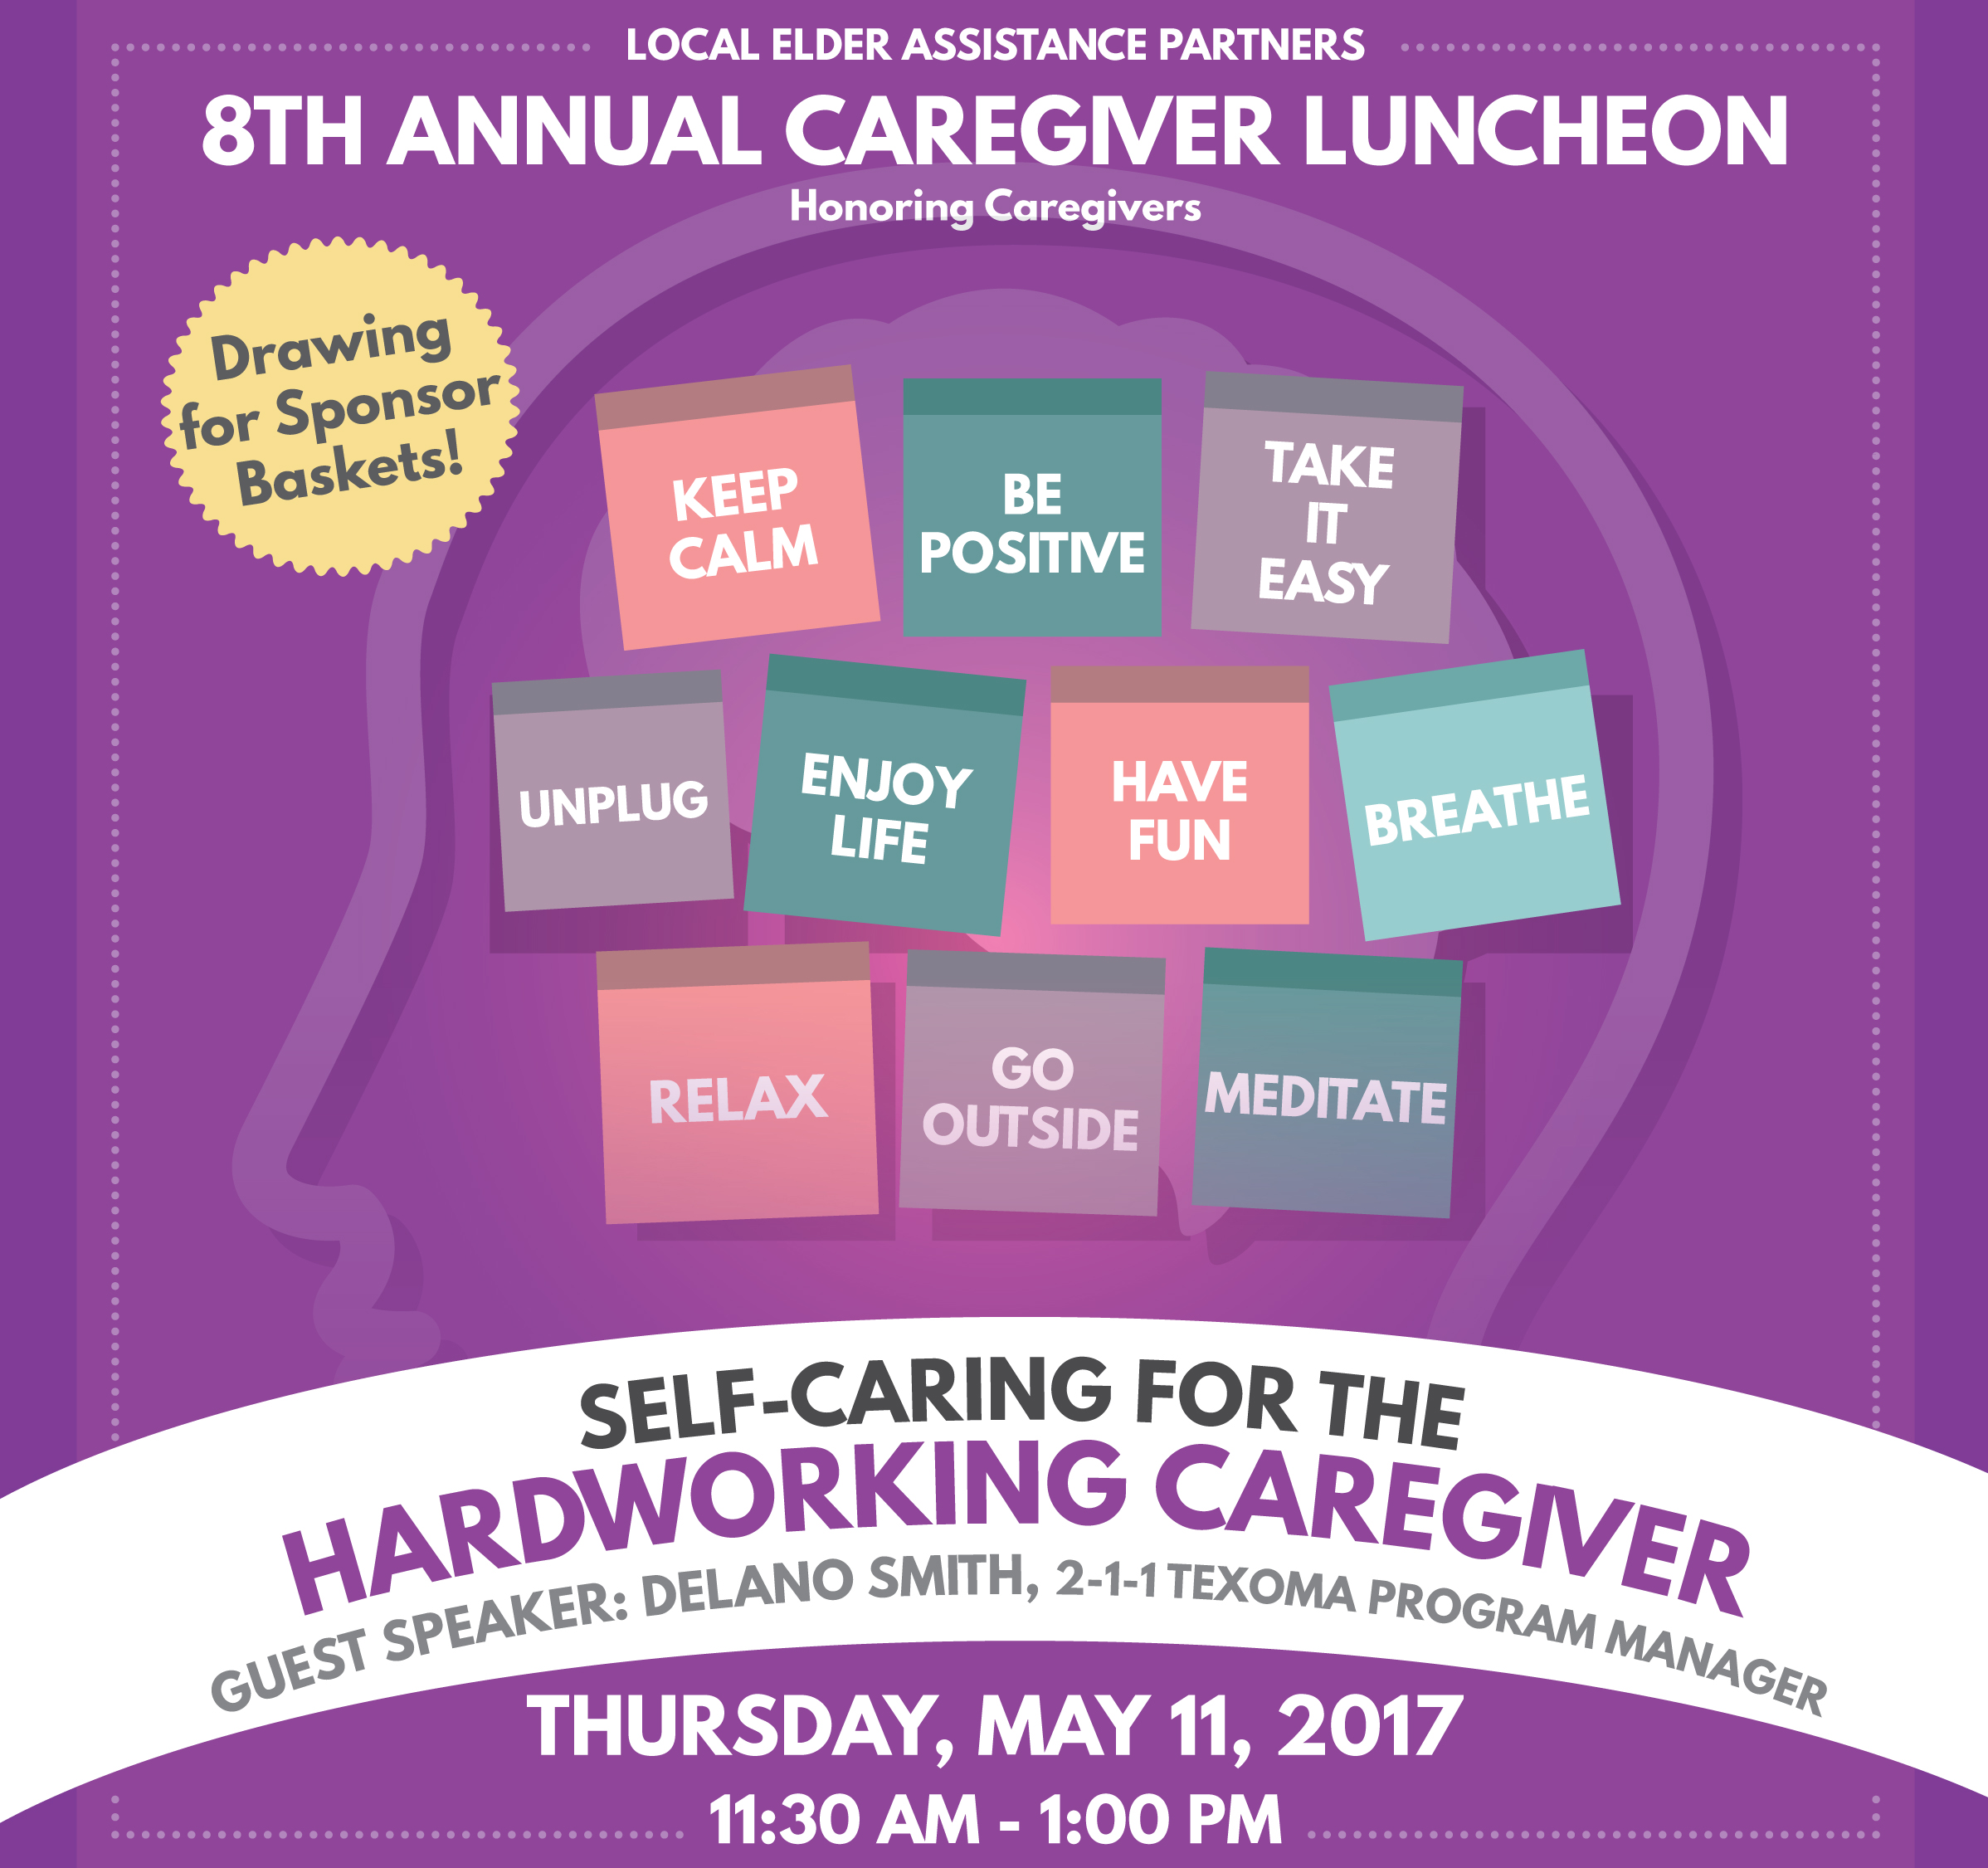 8th Annual Caregiver Luncheon